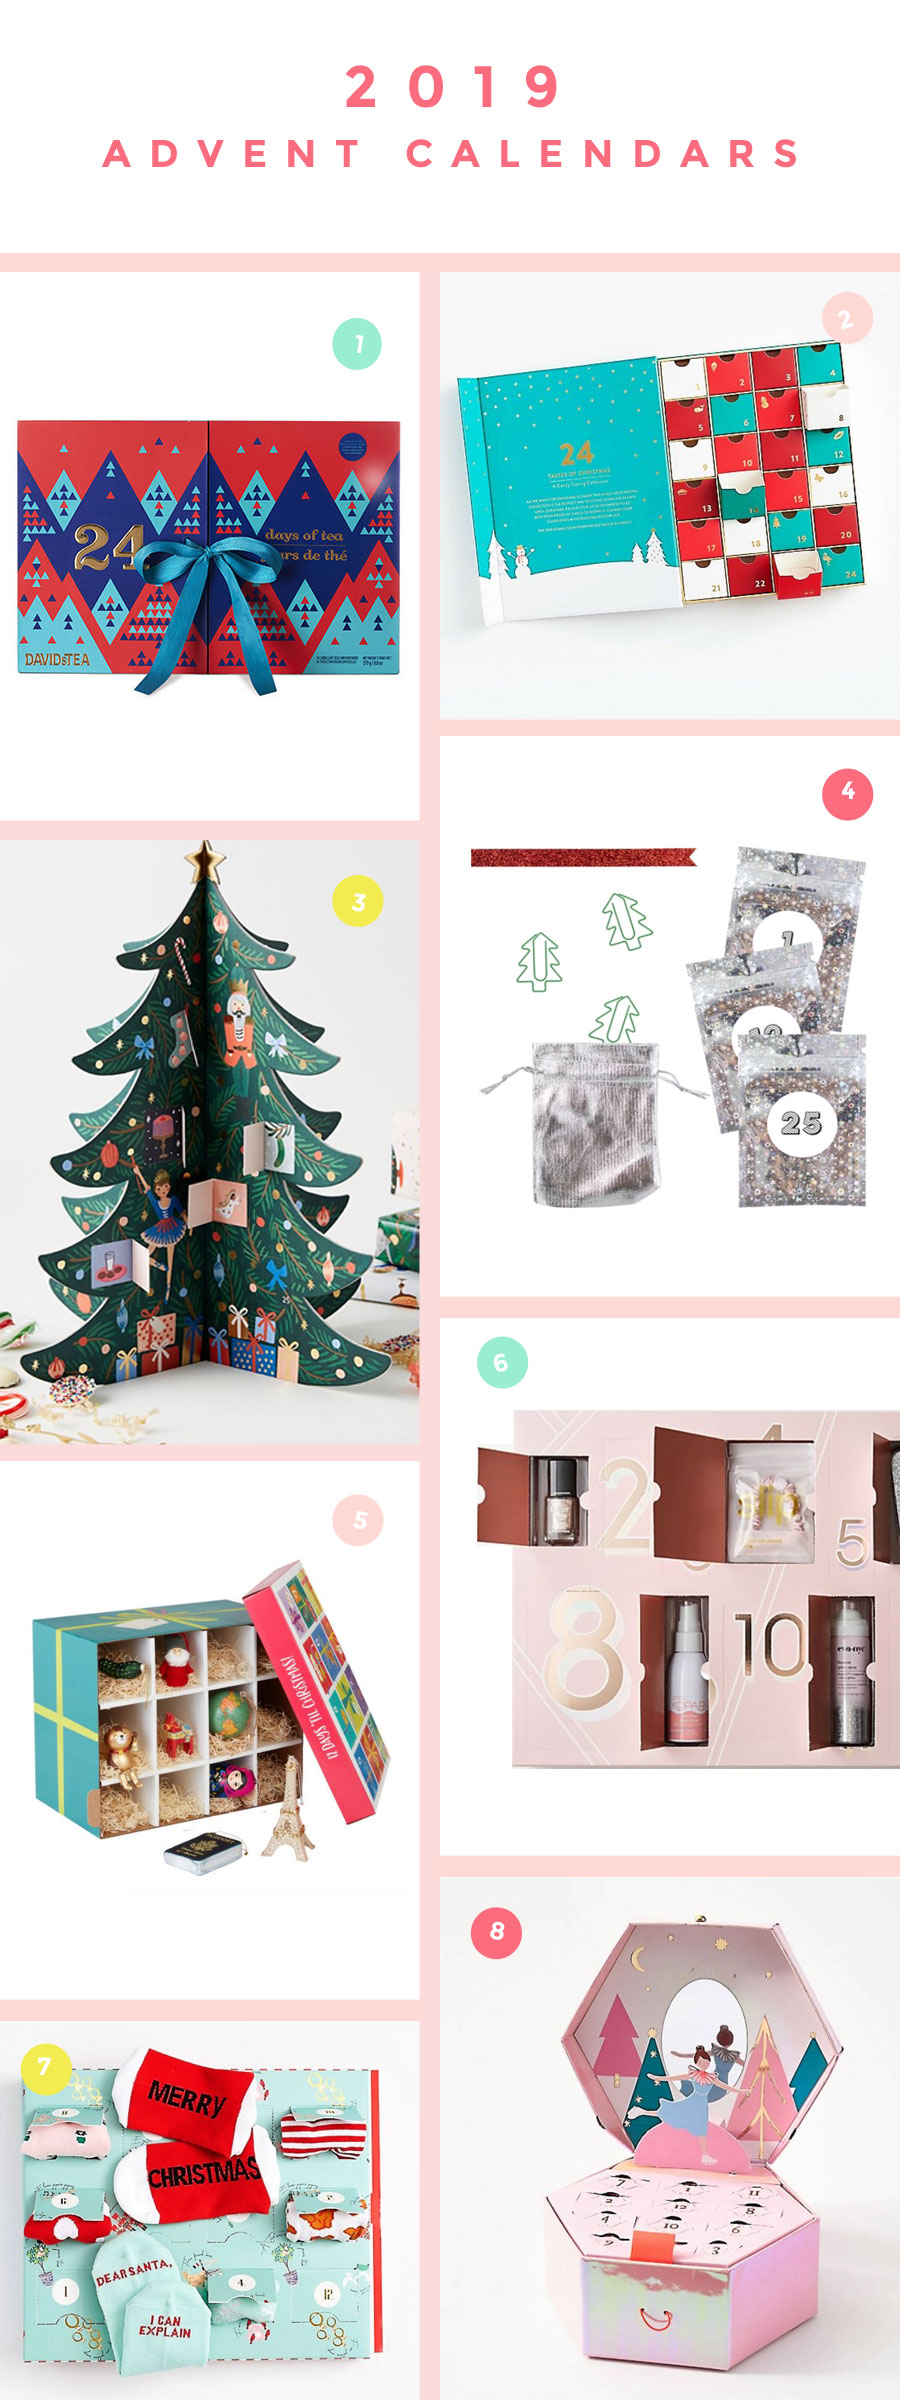 Fun and clever advent calendars this year that are sure to make someone smile